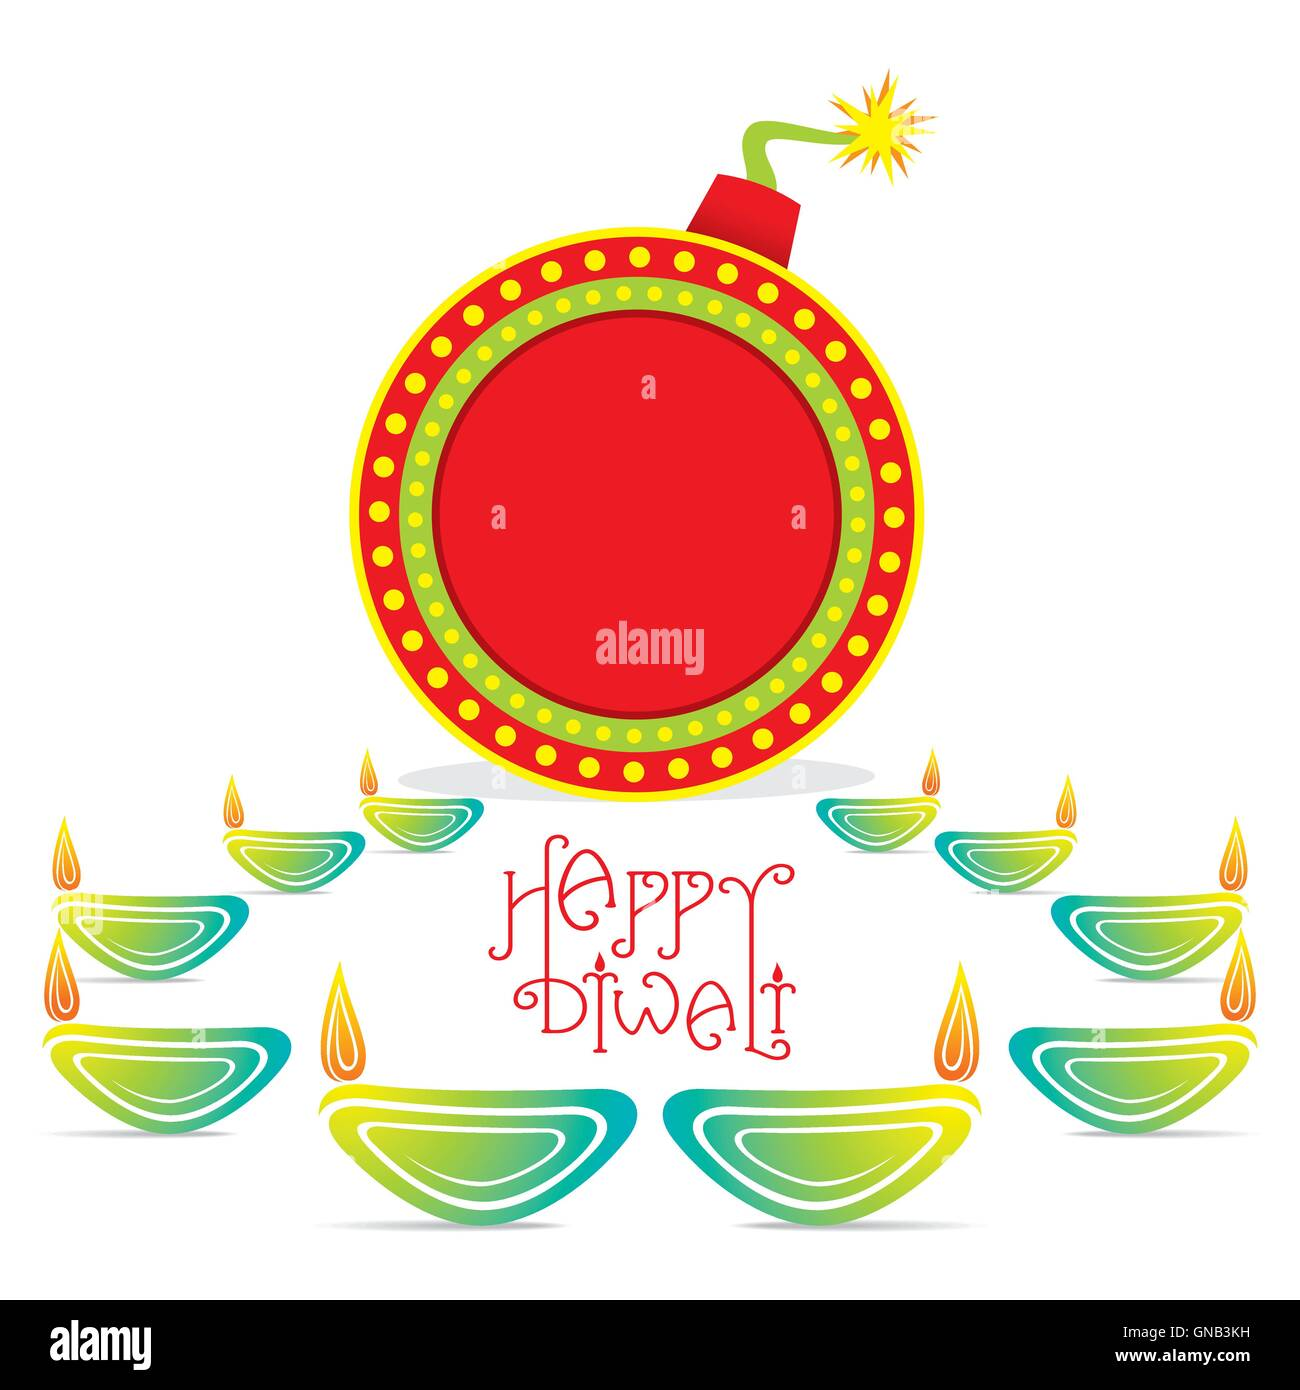 Beautiful Happy Diwali Vector Background Cut Out Stock Images